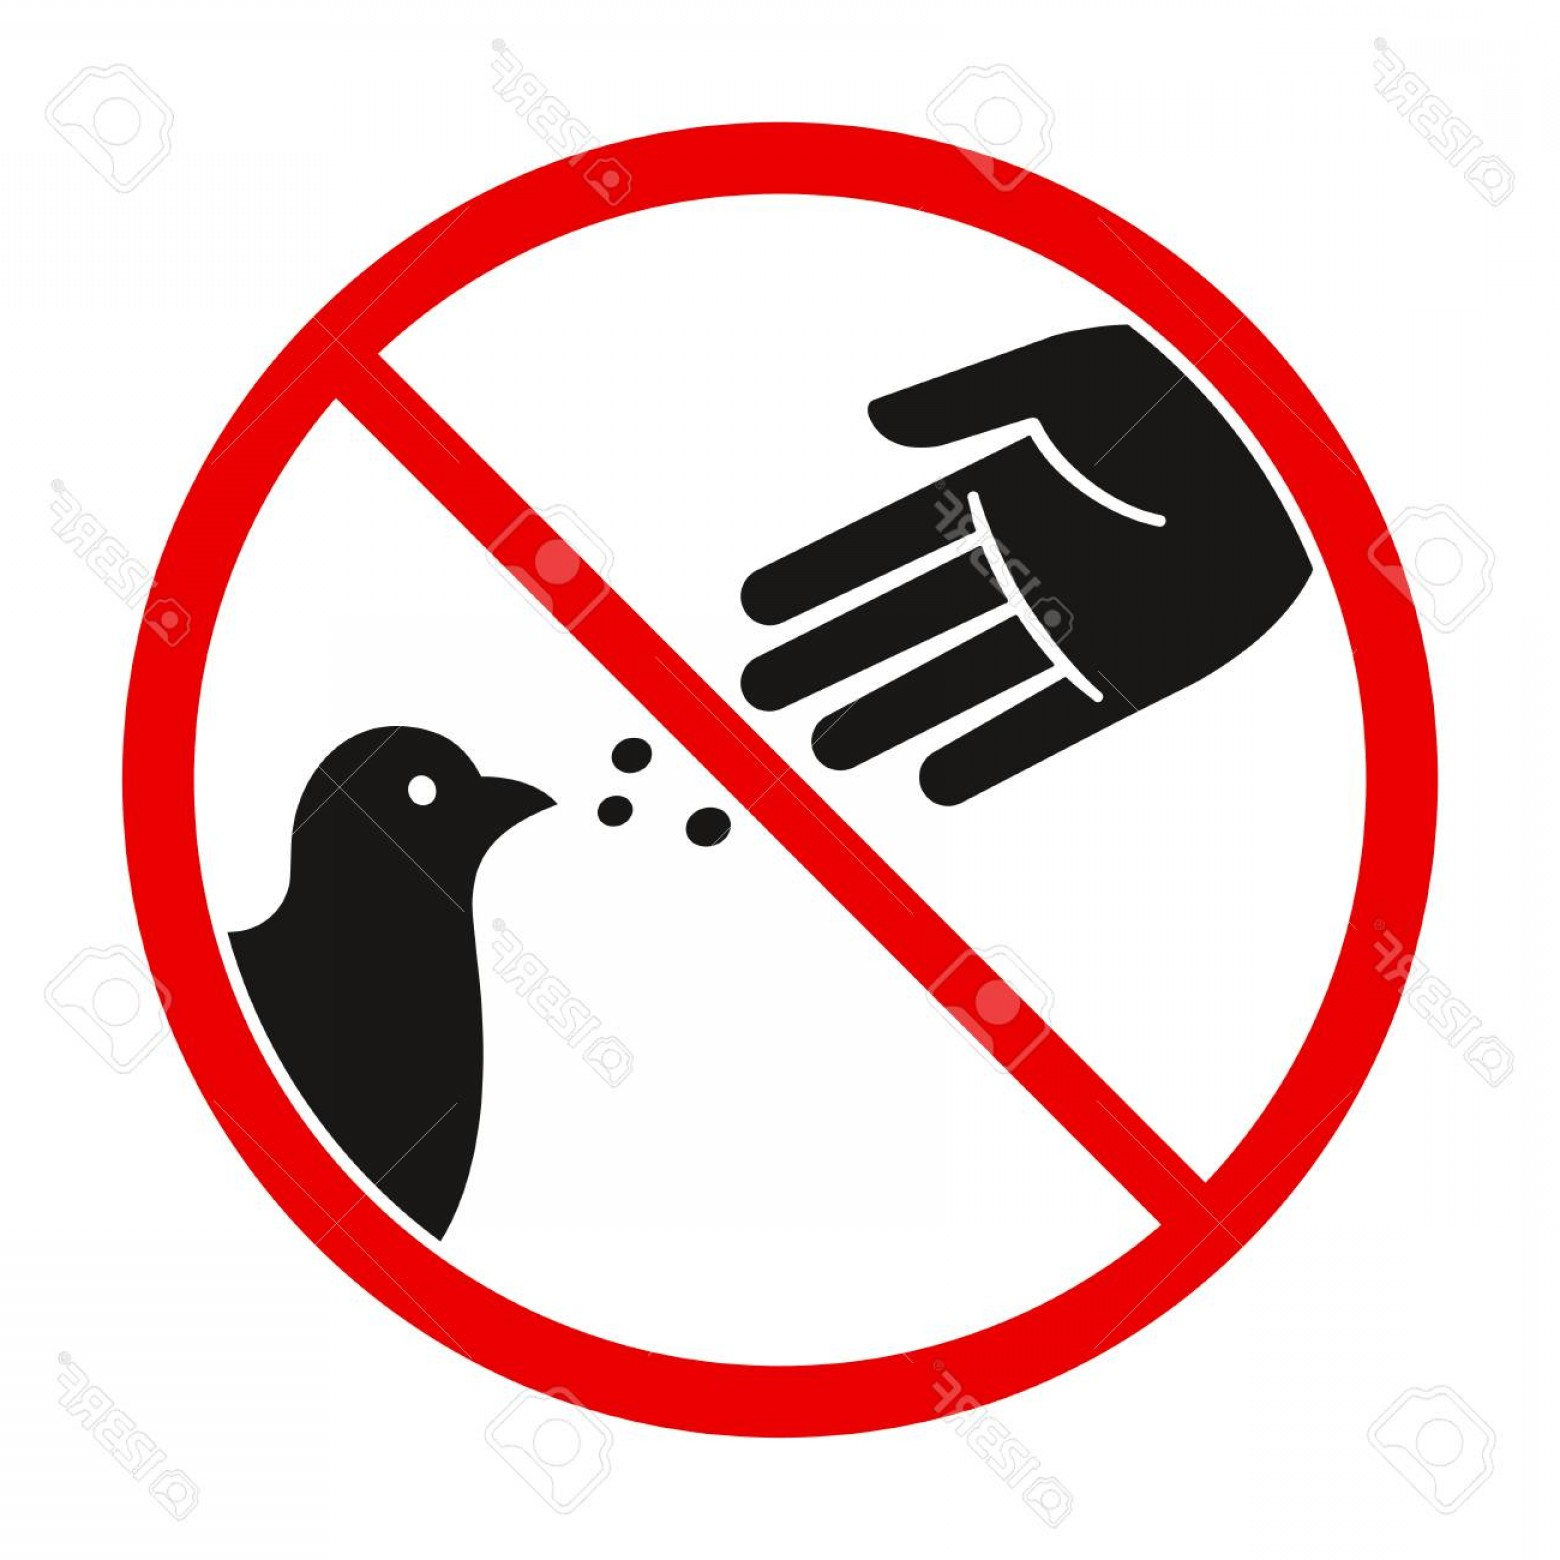 Vector Do Not: Photostock Vector Do Not Feed The Birds Warning Sign Stylized Vector Pigeon Silhouette And Hand Symbol In Crossed Red